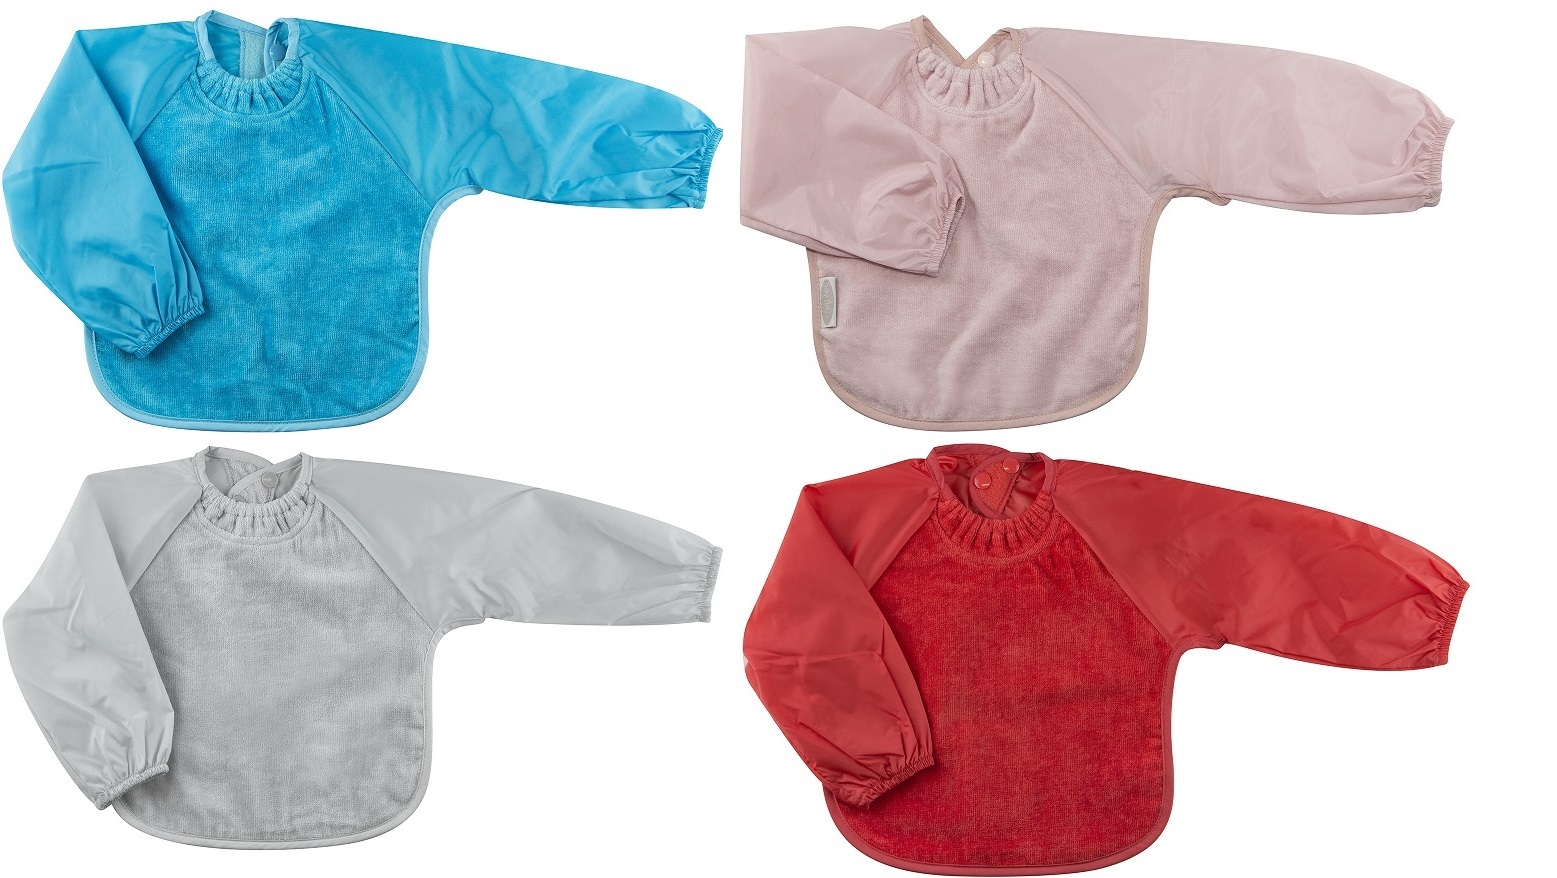 Silly Billyz Toweling Long Sleeve Bib 5 Months to 2 years